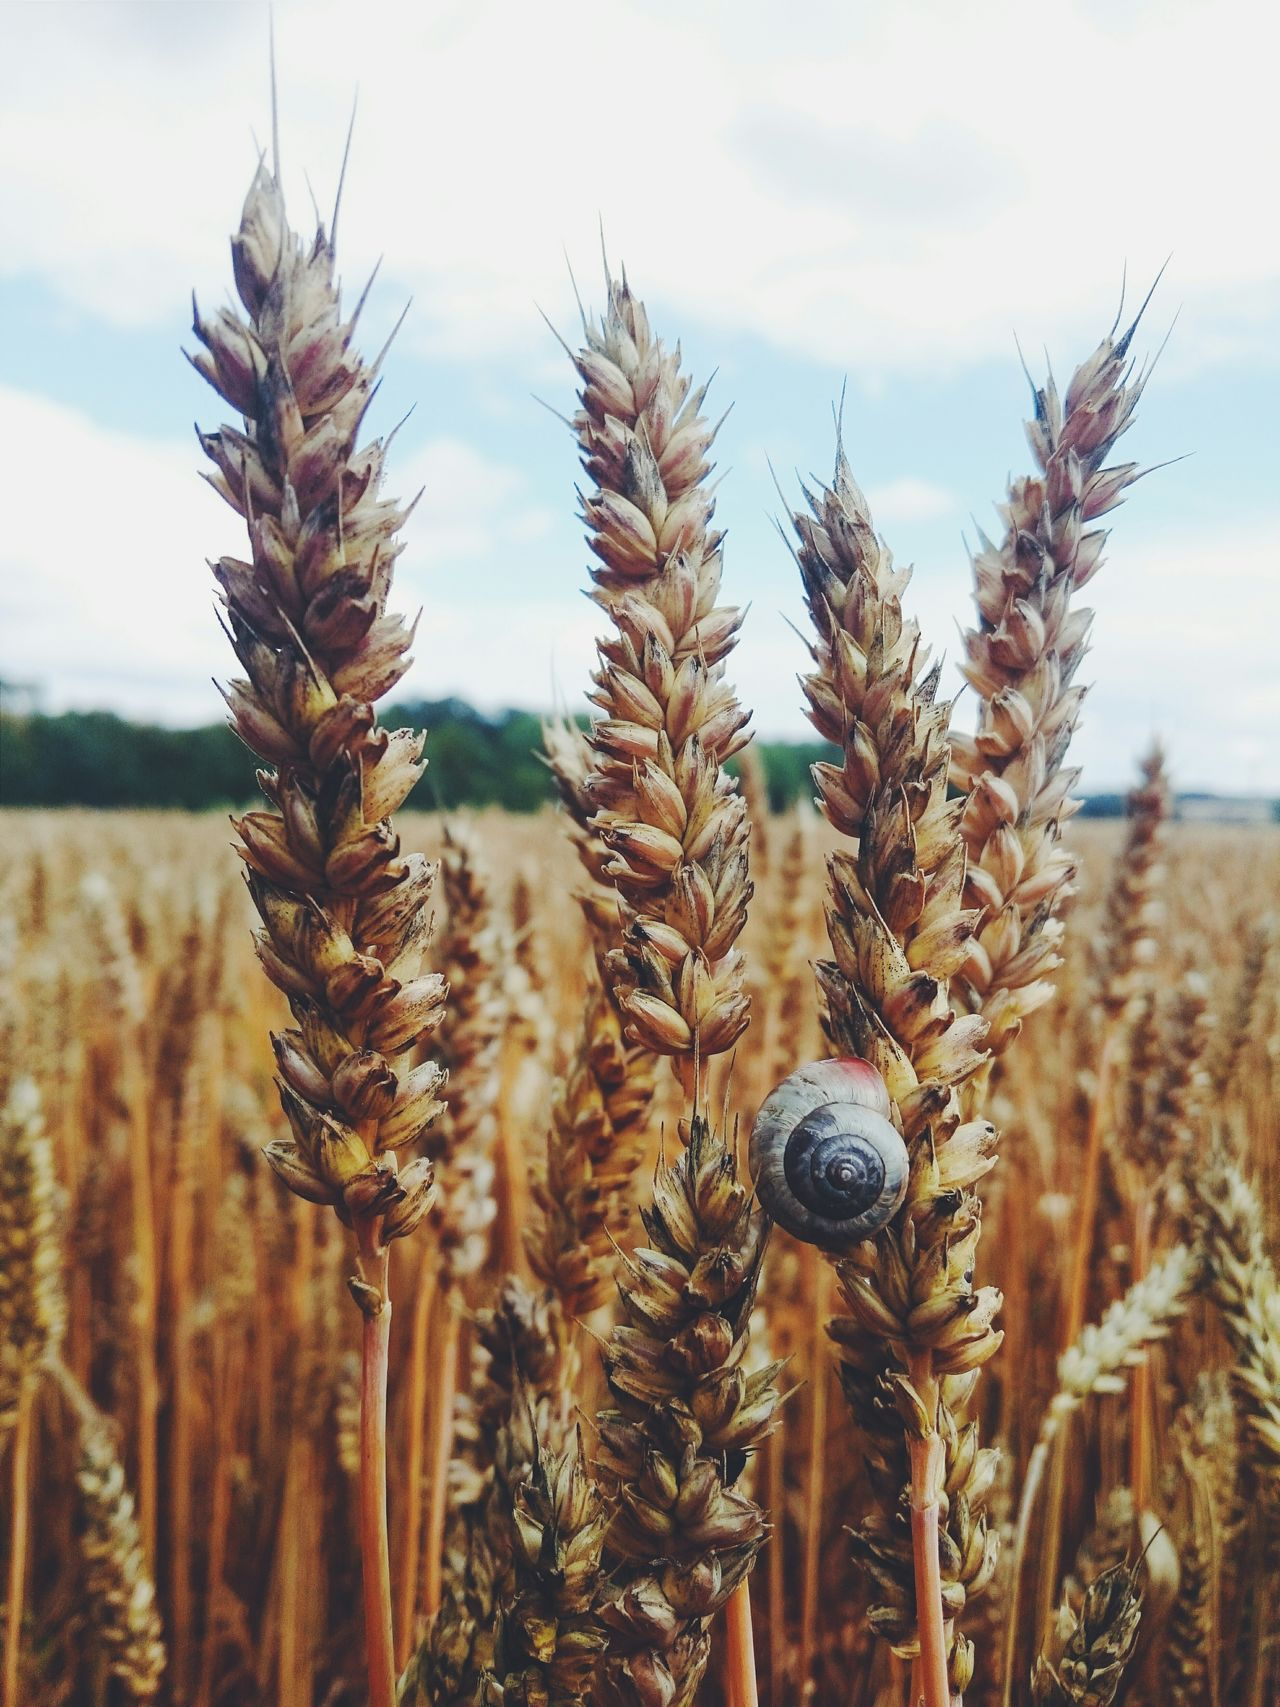 Vscocam Snail Corn Fields Skyline Taking Photos Check This Out Molusc Z3 Relaxing